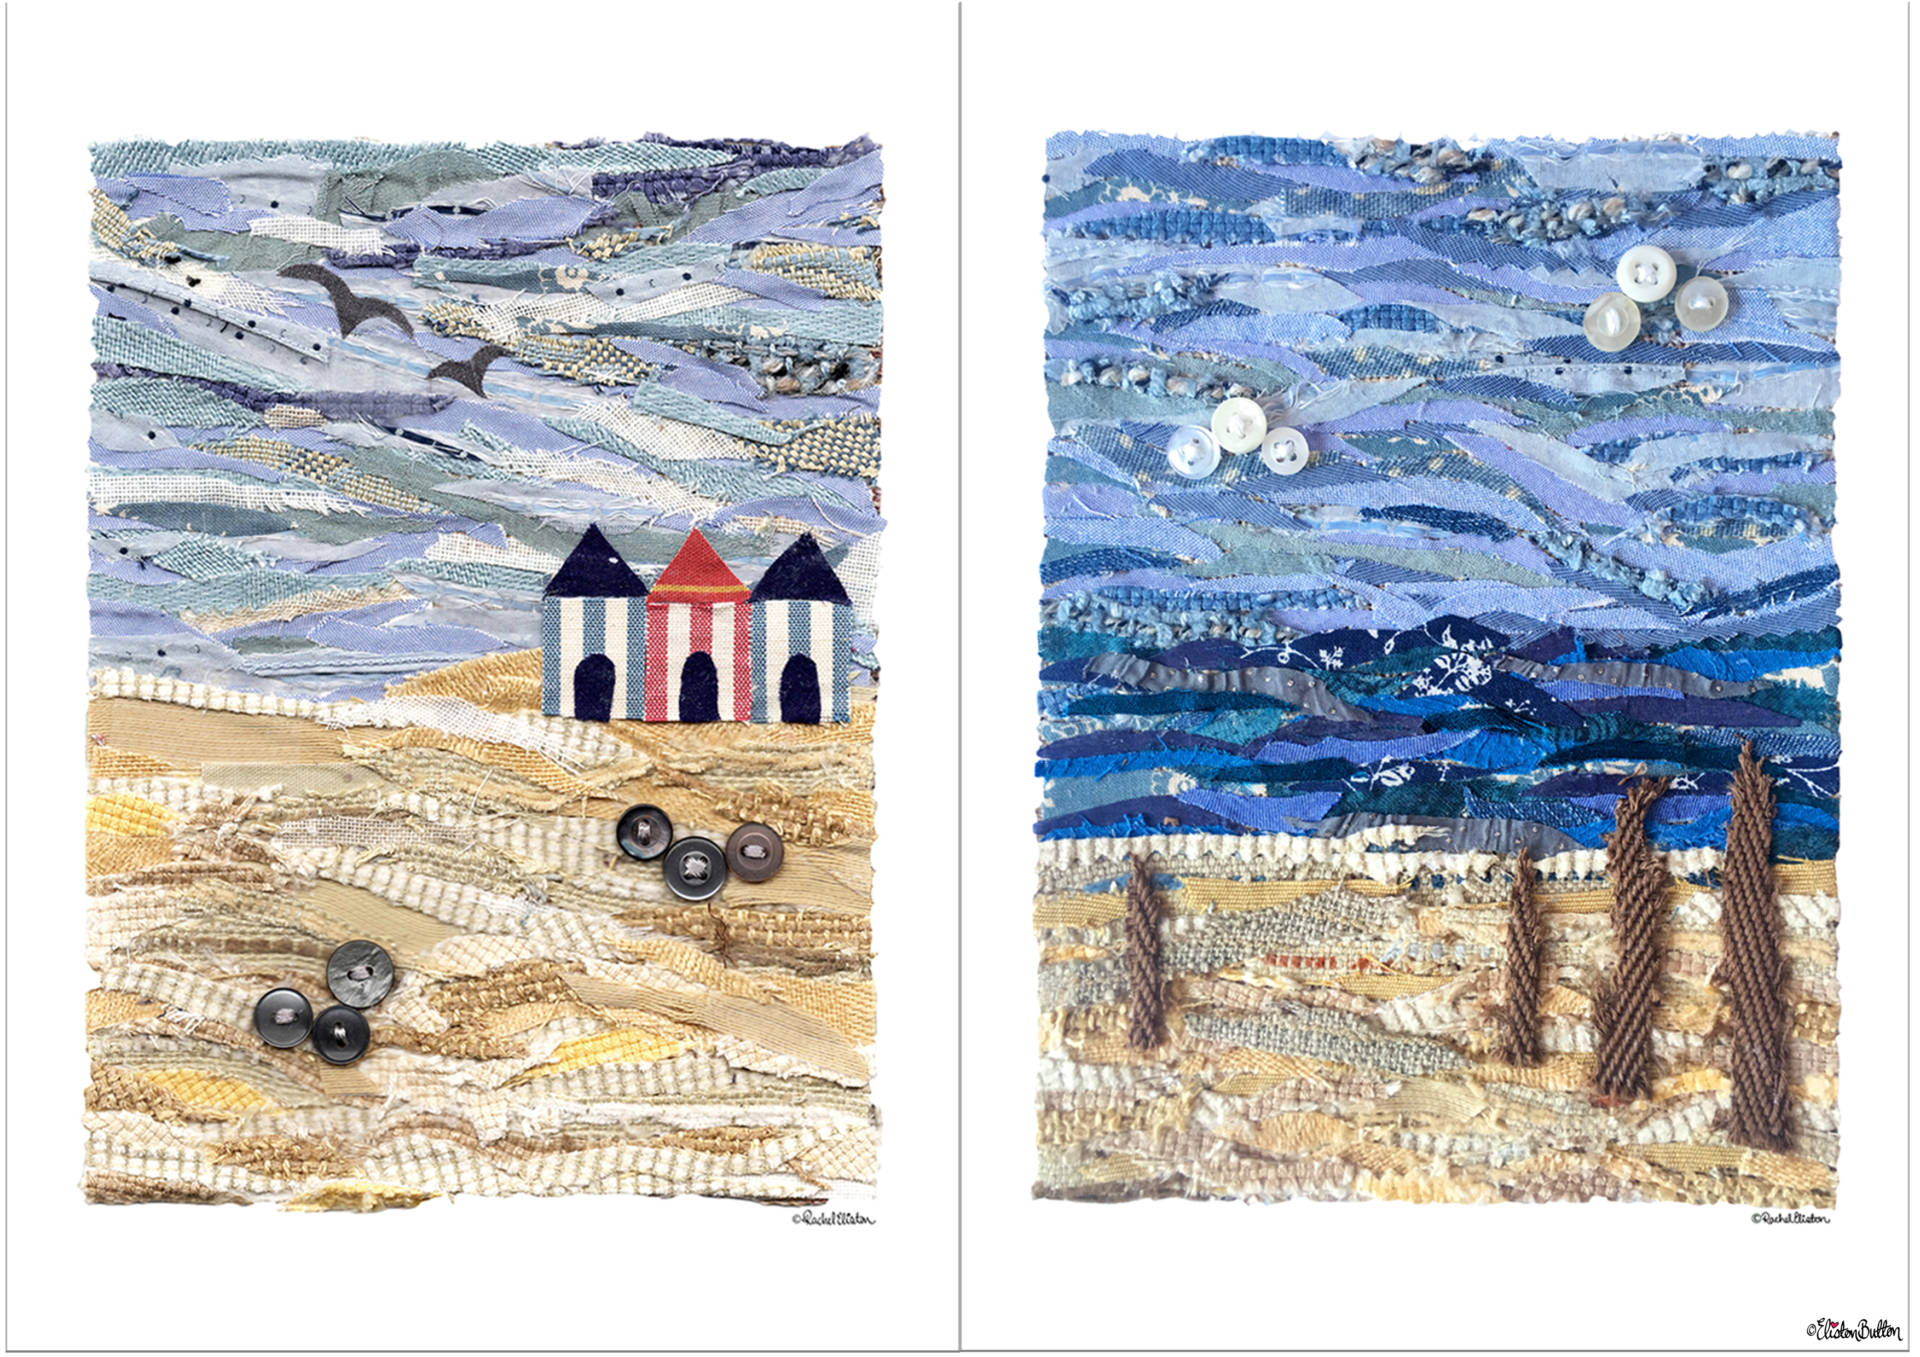 Fabric Beach Huts and Driftwood Collage Prints By Eliston Button - New Fabric Collage and Shooting Star Prints at www.elistonbutton.com - Eliston Button - That Crafty Kid – Art, Design, Craft & Adventure.